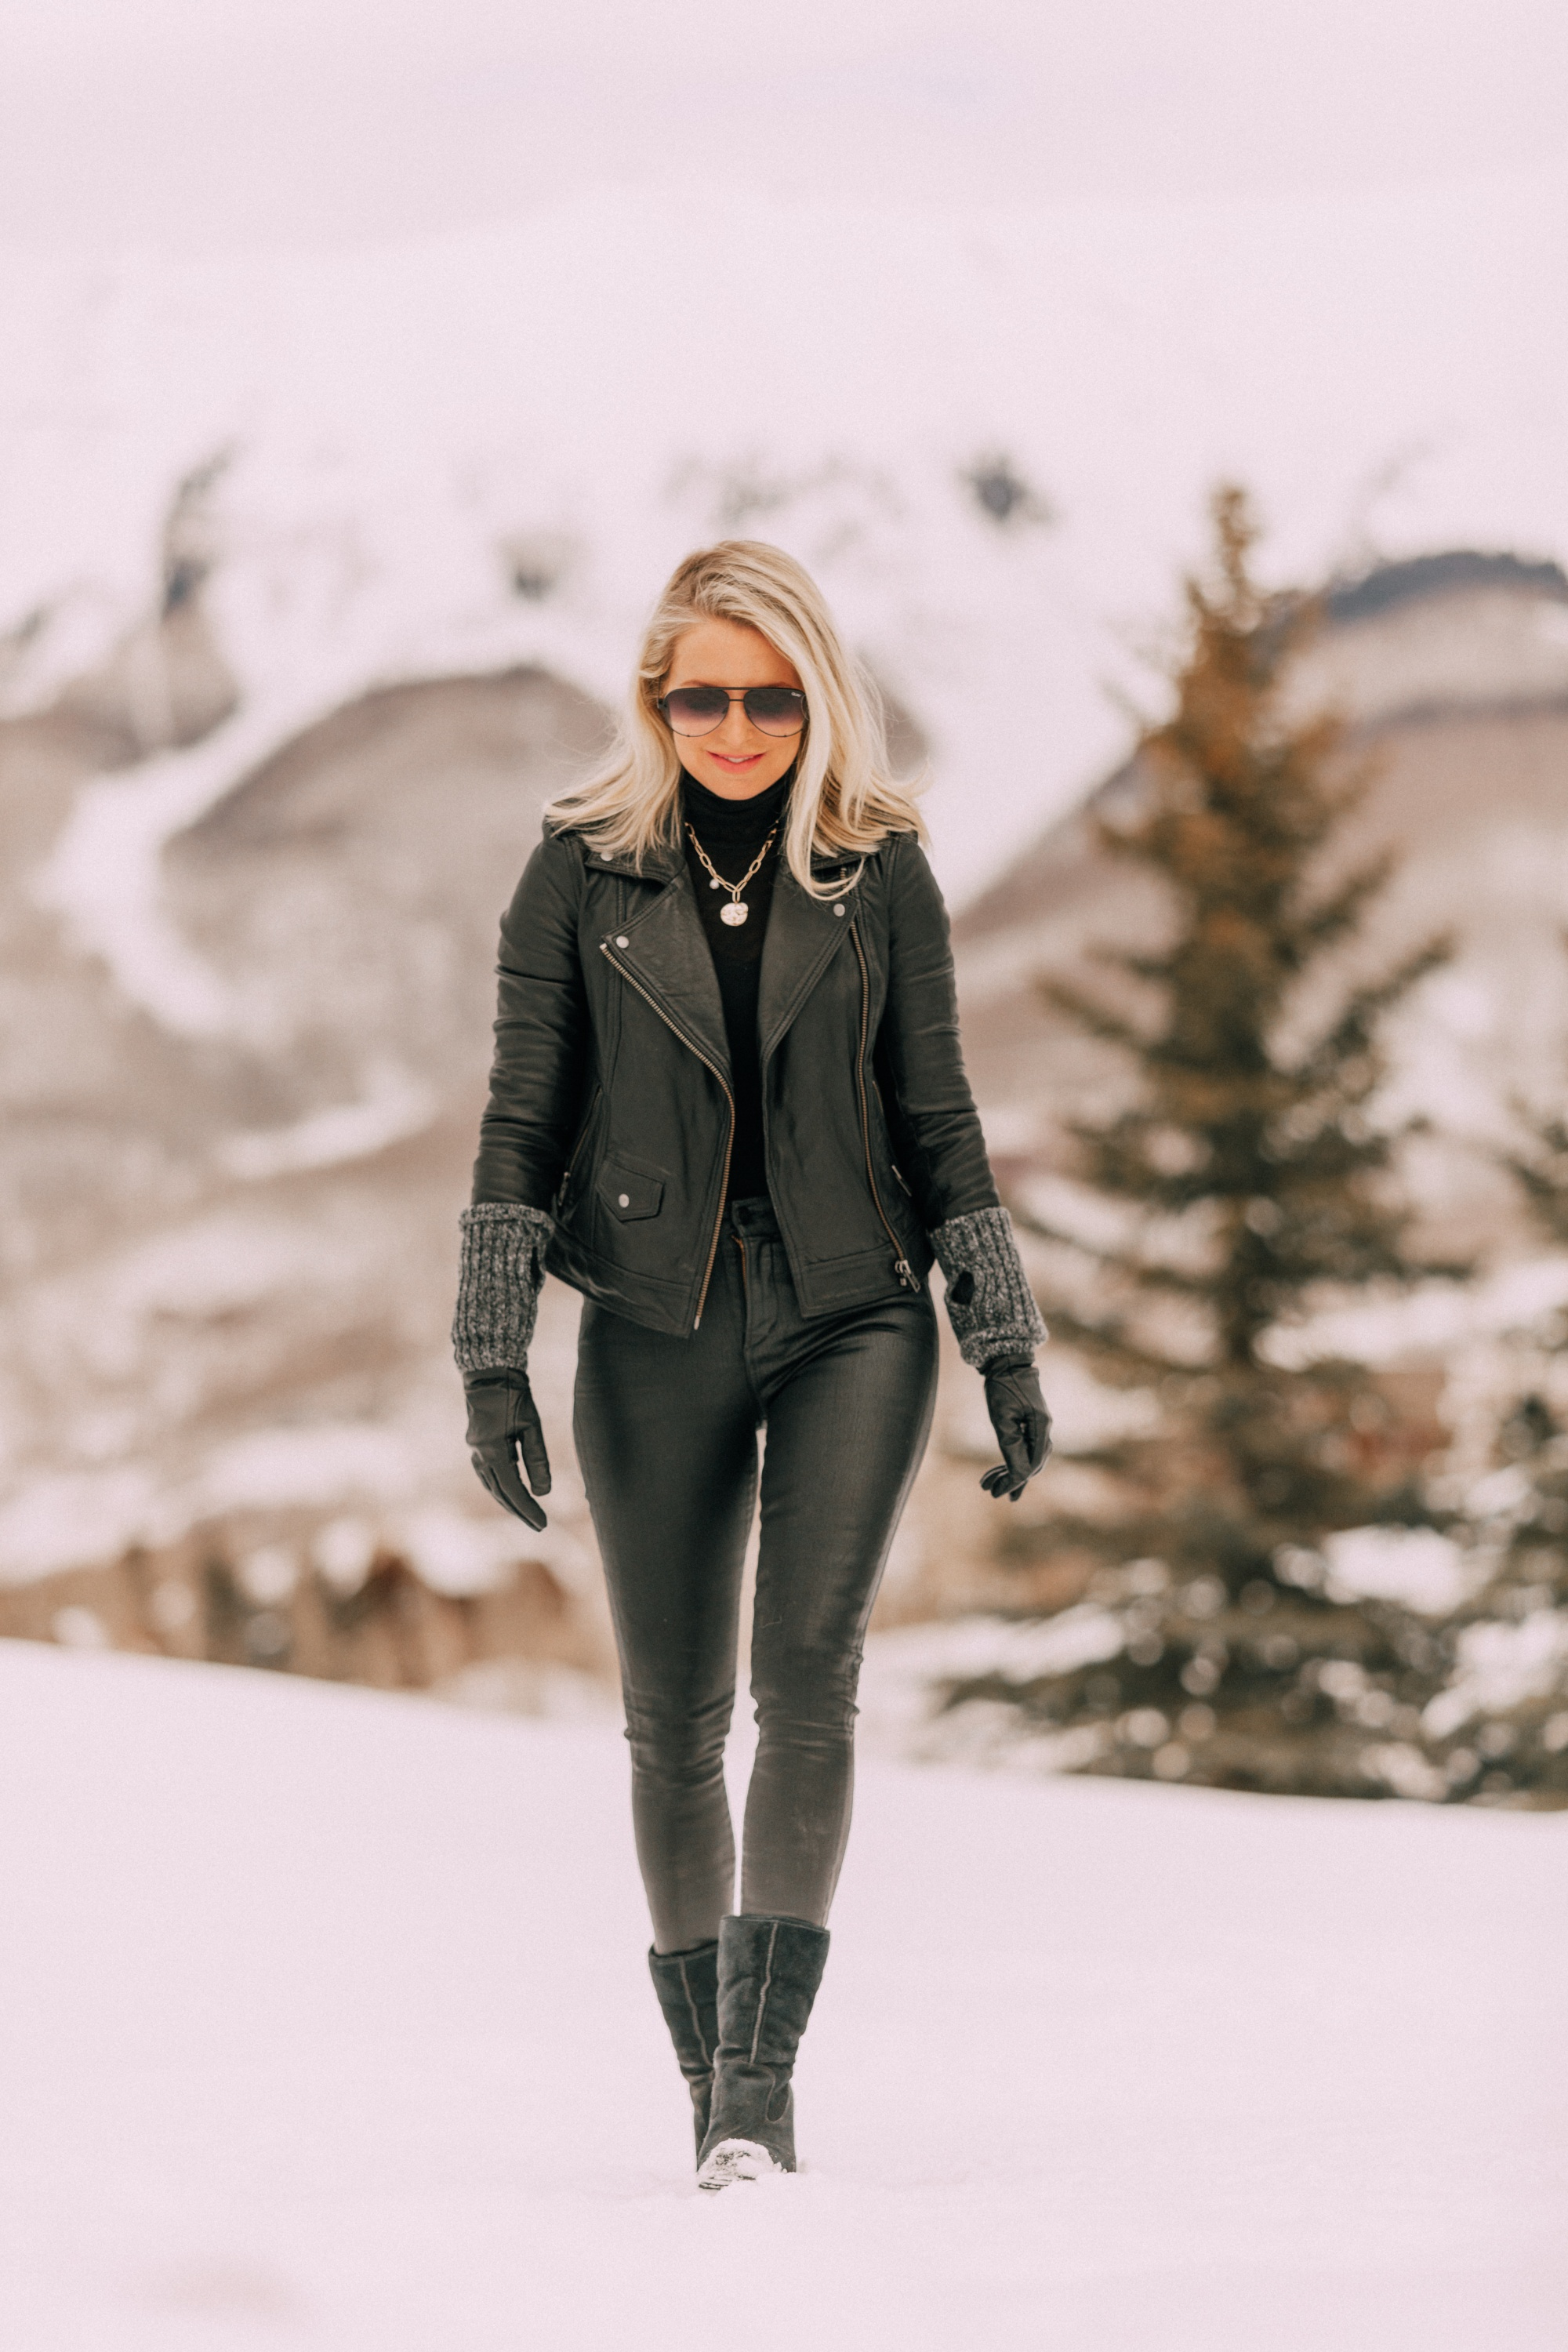 How To Layer A Moto Jacket, Fashion blogger Erin Busbee of BusbeeStyle.com wearing a black leather IRO moto jacket, Carolina Amato gloves, rocket leatherette skinny jeans by Citizens of Humanity, black cashmere turtleneck, and Ugg wedge boots in Telluride, CO